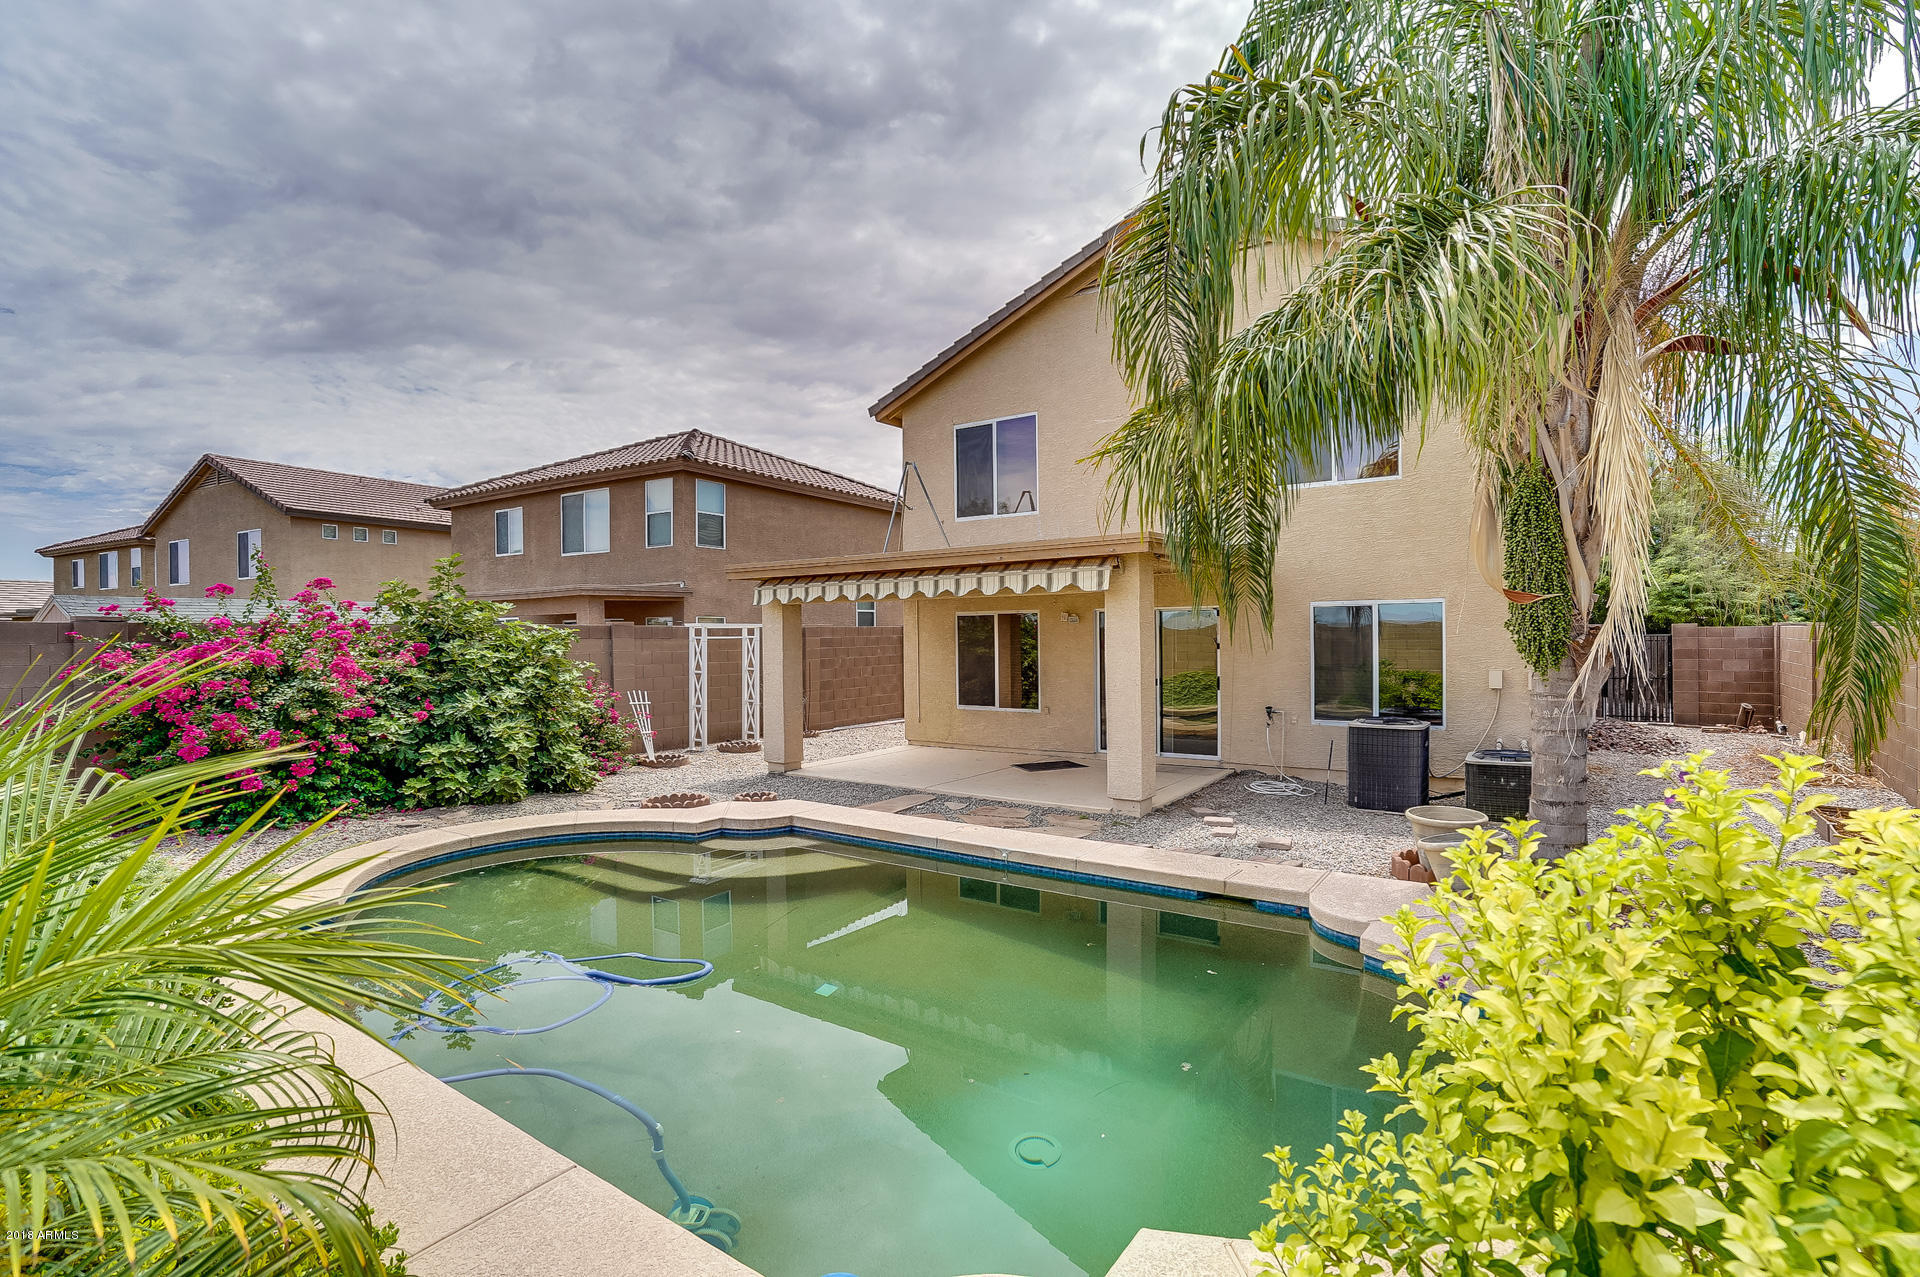 MLS 5781909 150 S 18TH Street, Coolidge, AZ 85128 Coolidge AZ Private Pool